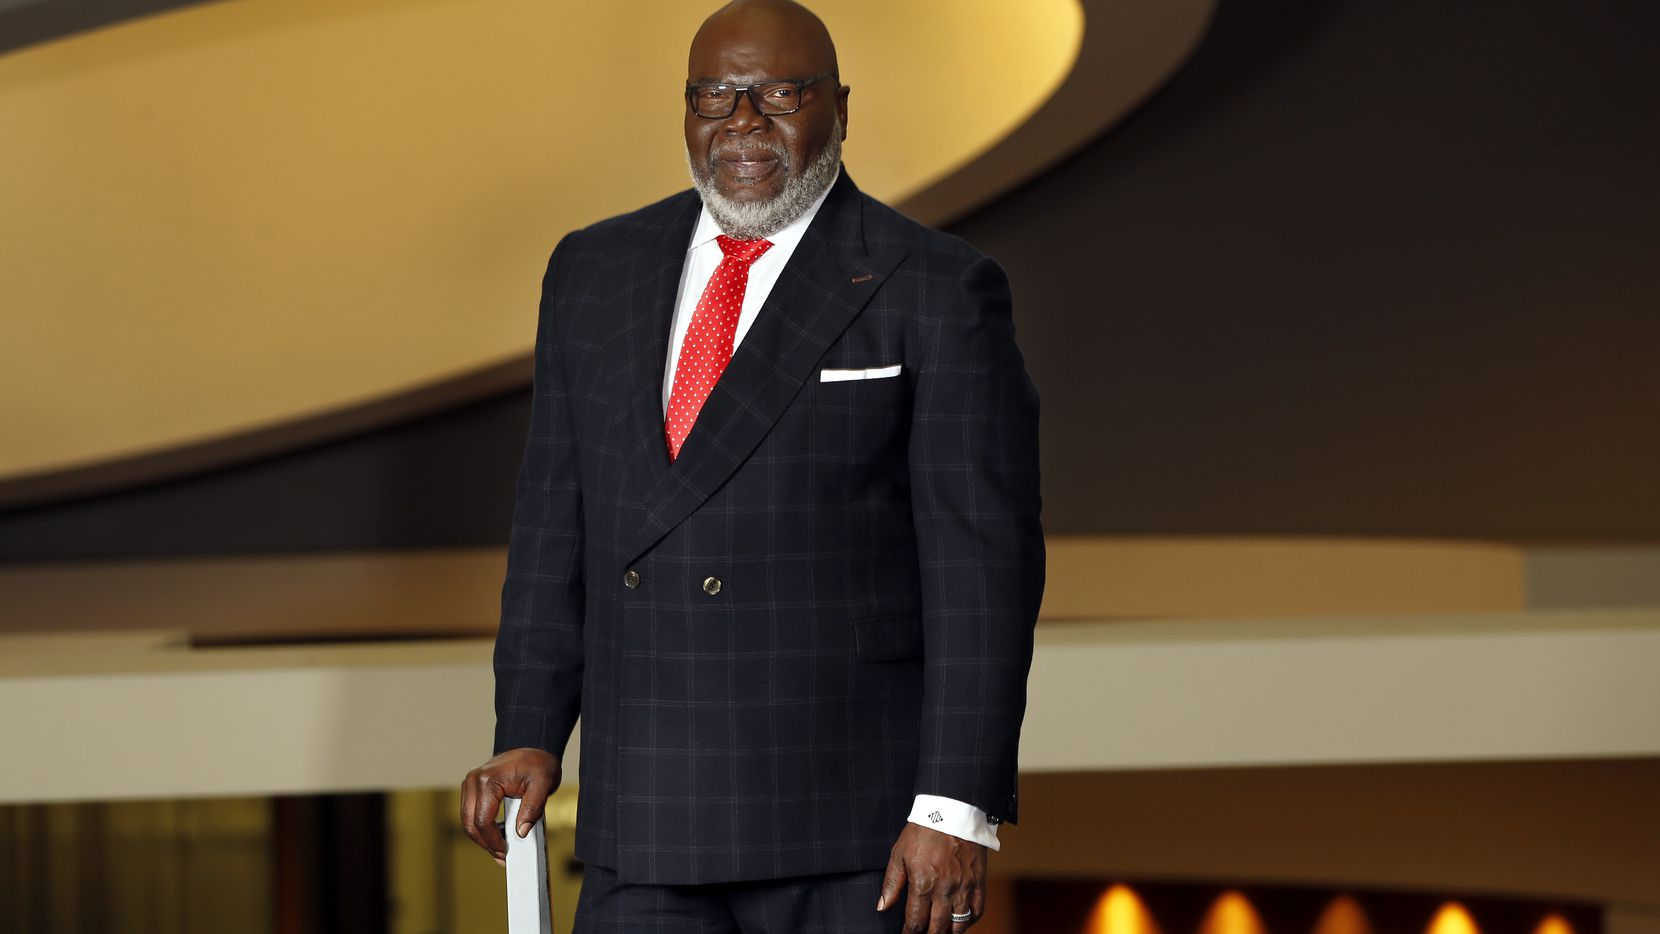 Bishop T.D. Jakes, who started The Potter's House in southern Dallas in 1996, is creating a nonprofit foundation to promote education, job training and collaborations with business.